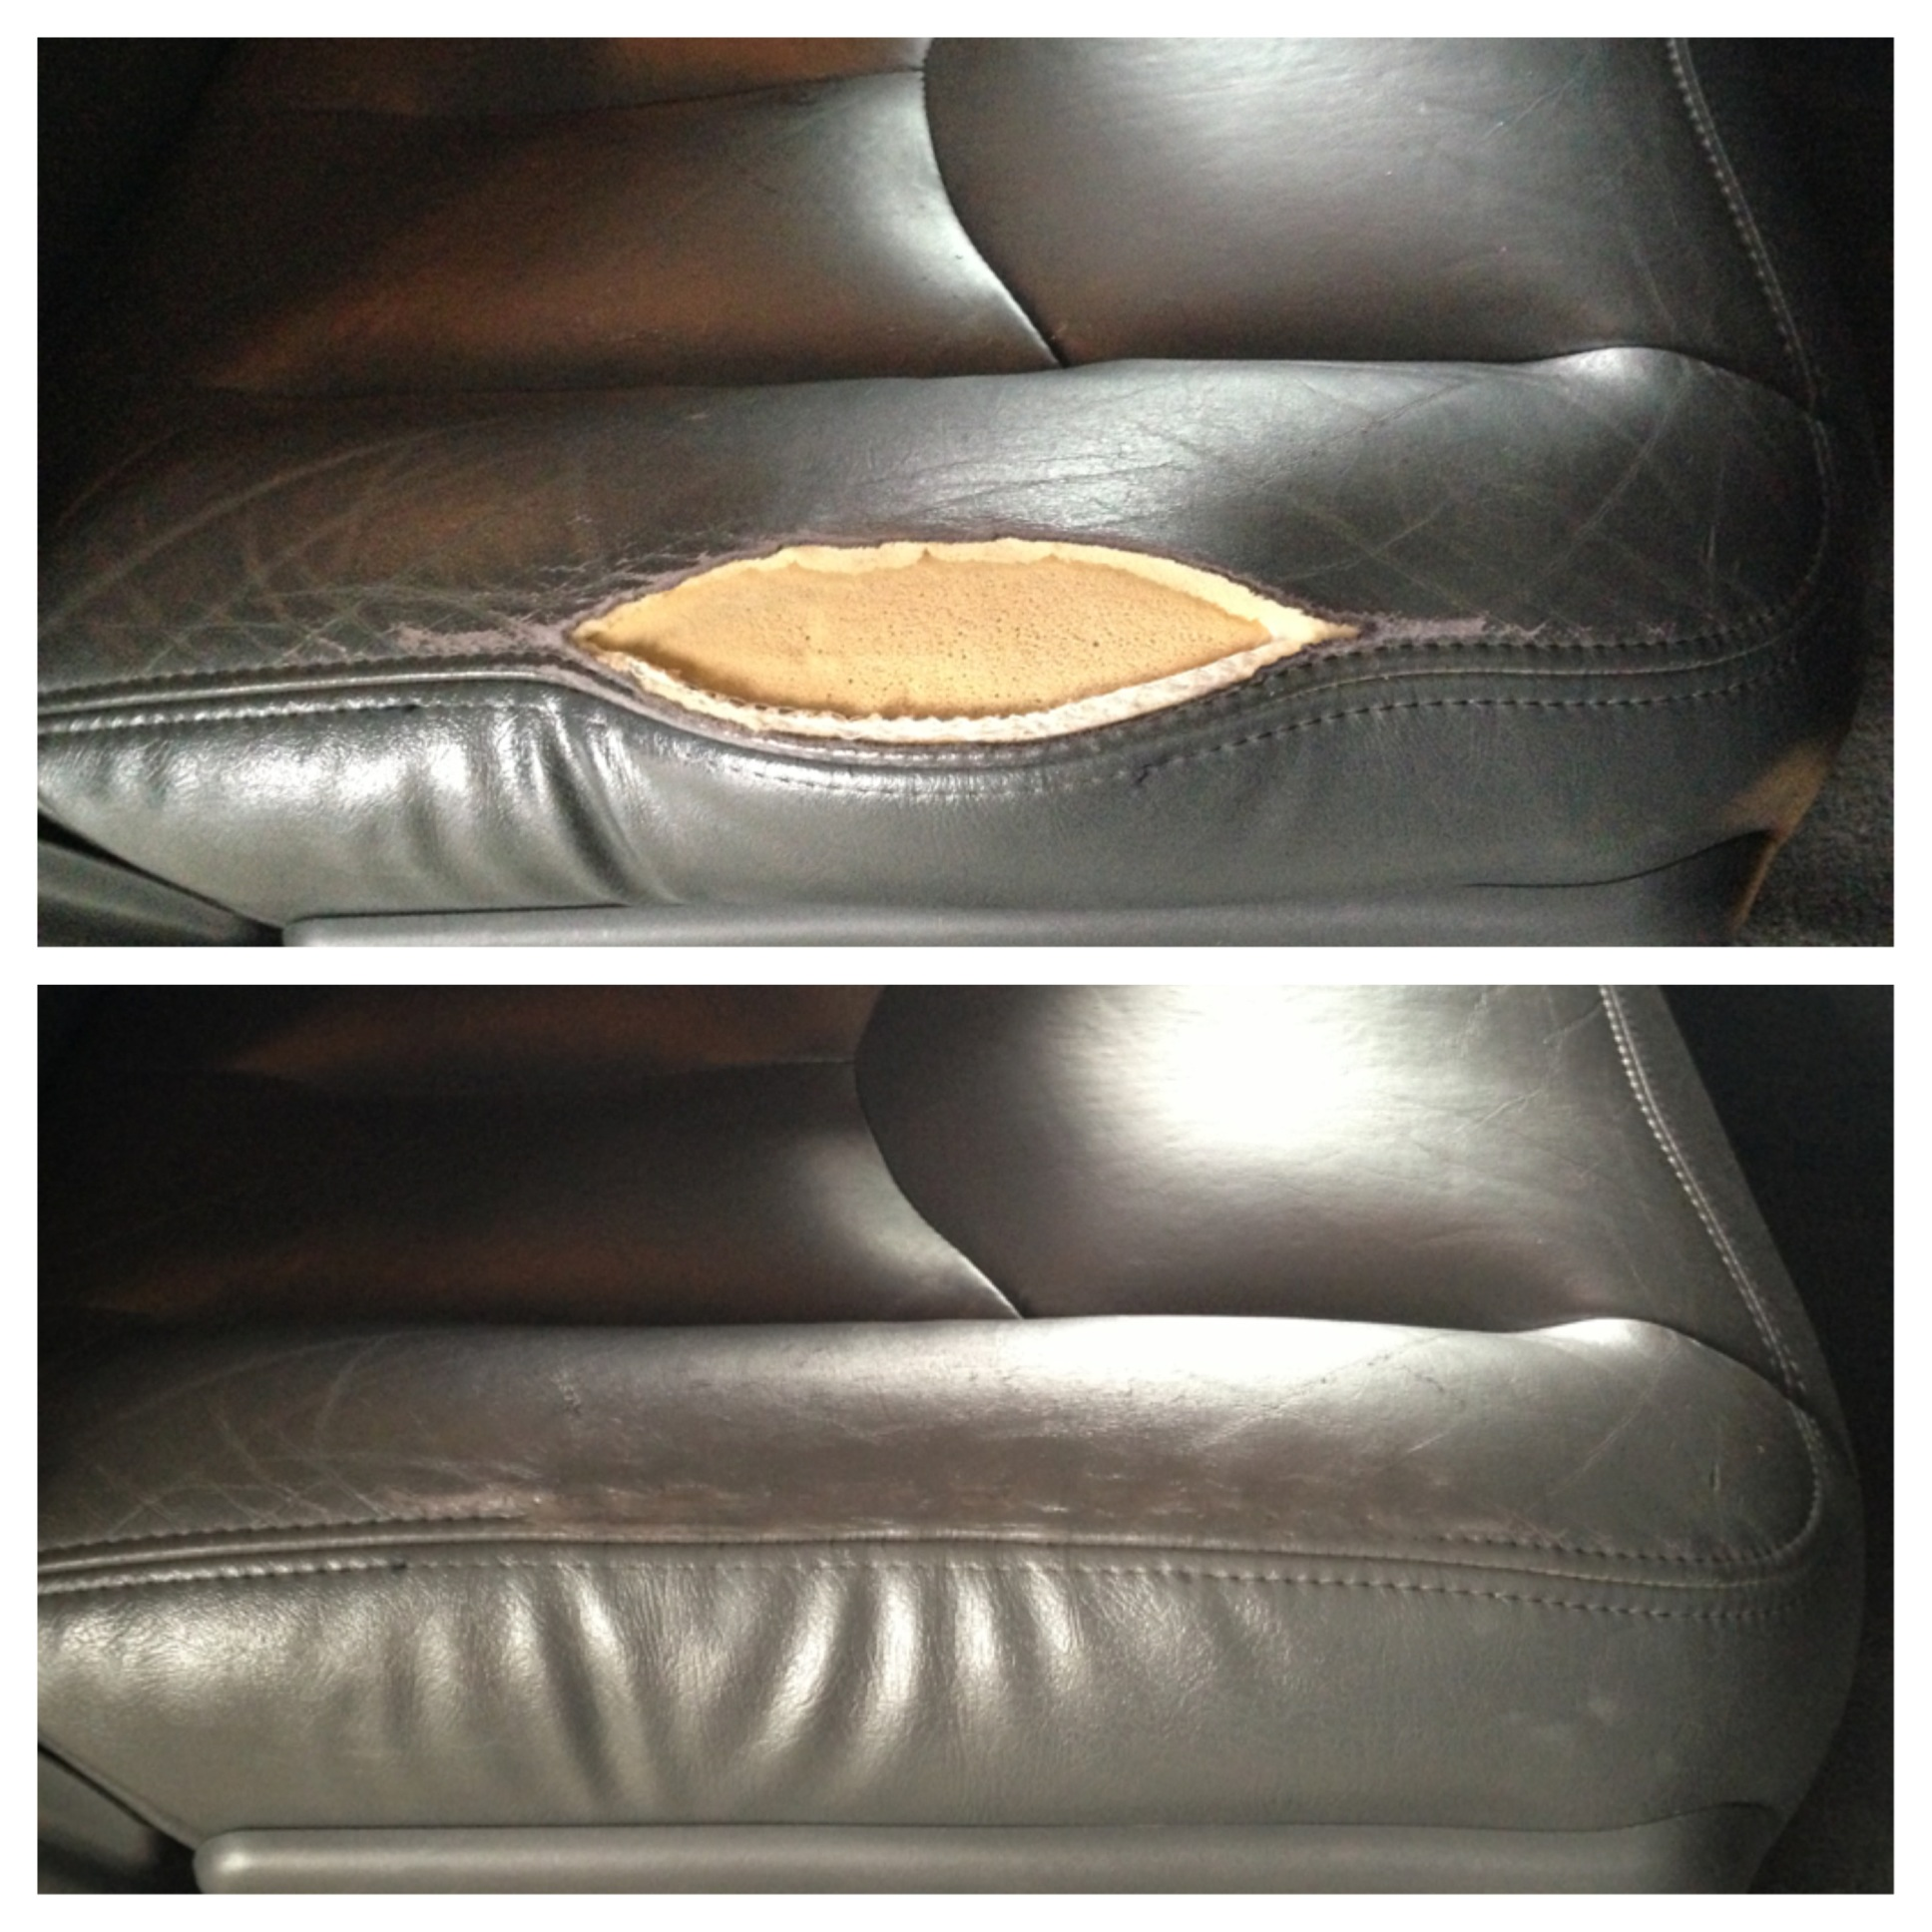 When your budget on a certain vehicle is limted our S.M.A.R.T. repairs are a great alternative to upholstery.